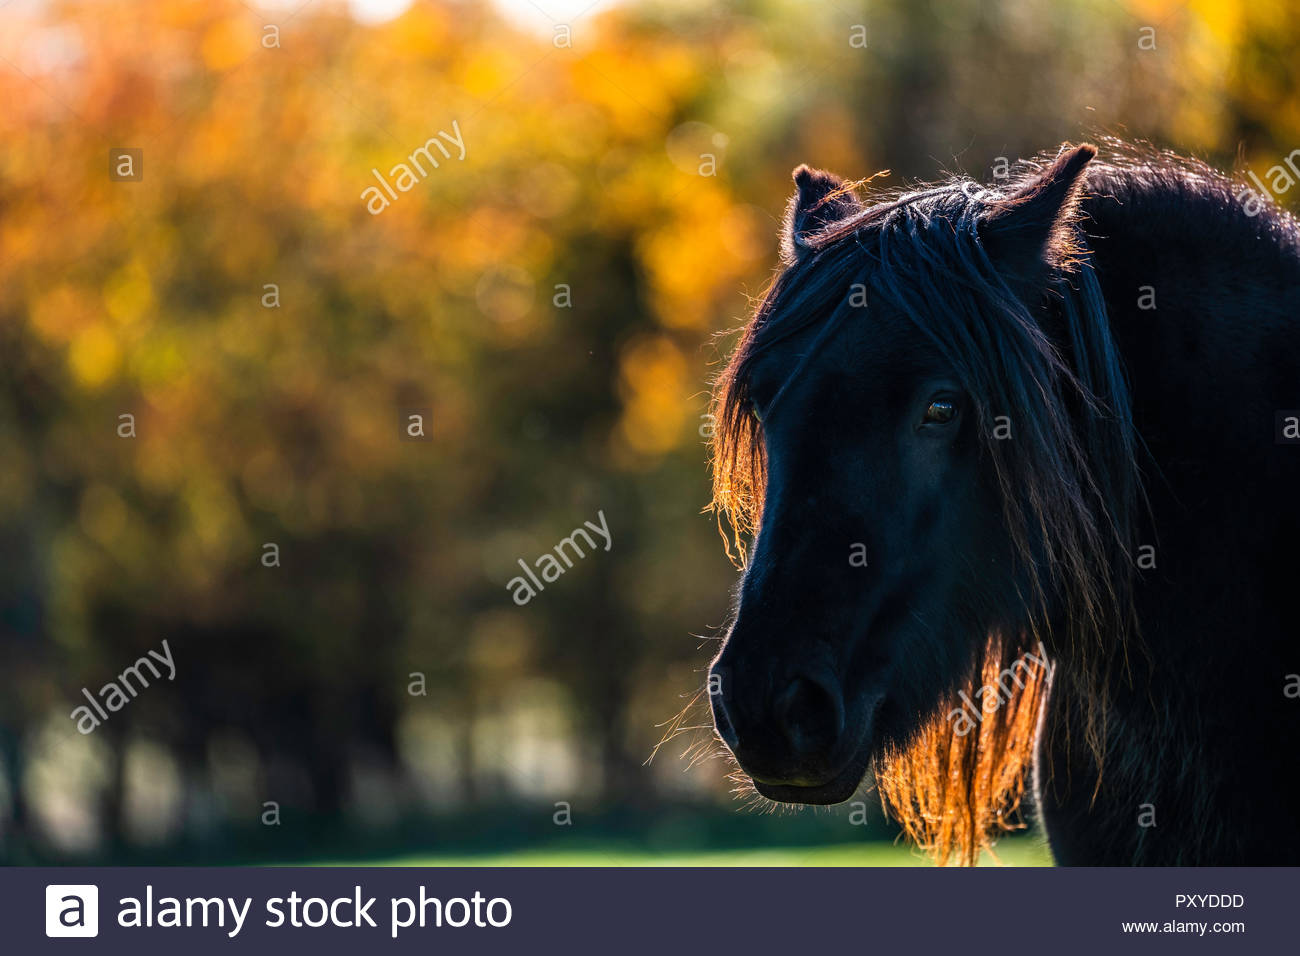 Towford, Jedburgh, Scottish Borders, UK. 15th October 2018. Fell Ponies graze in the autumn sunshine at Towford Farm in the foothills of the Cheviots  Stock Photo